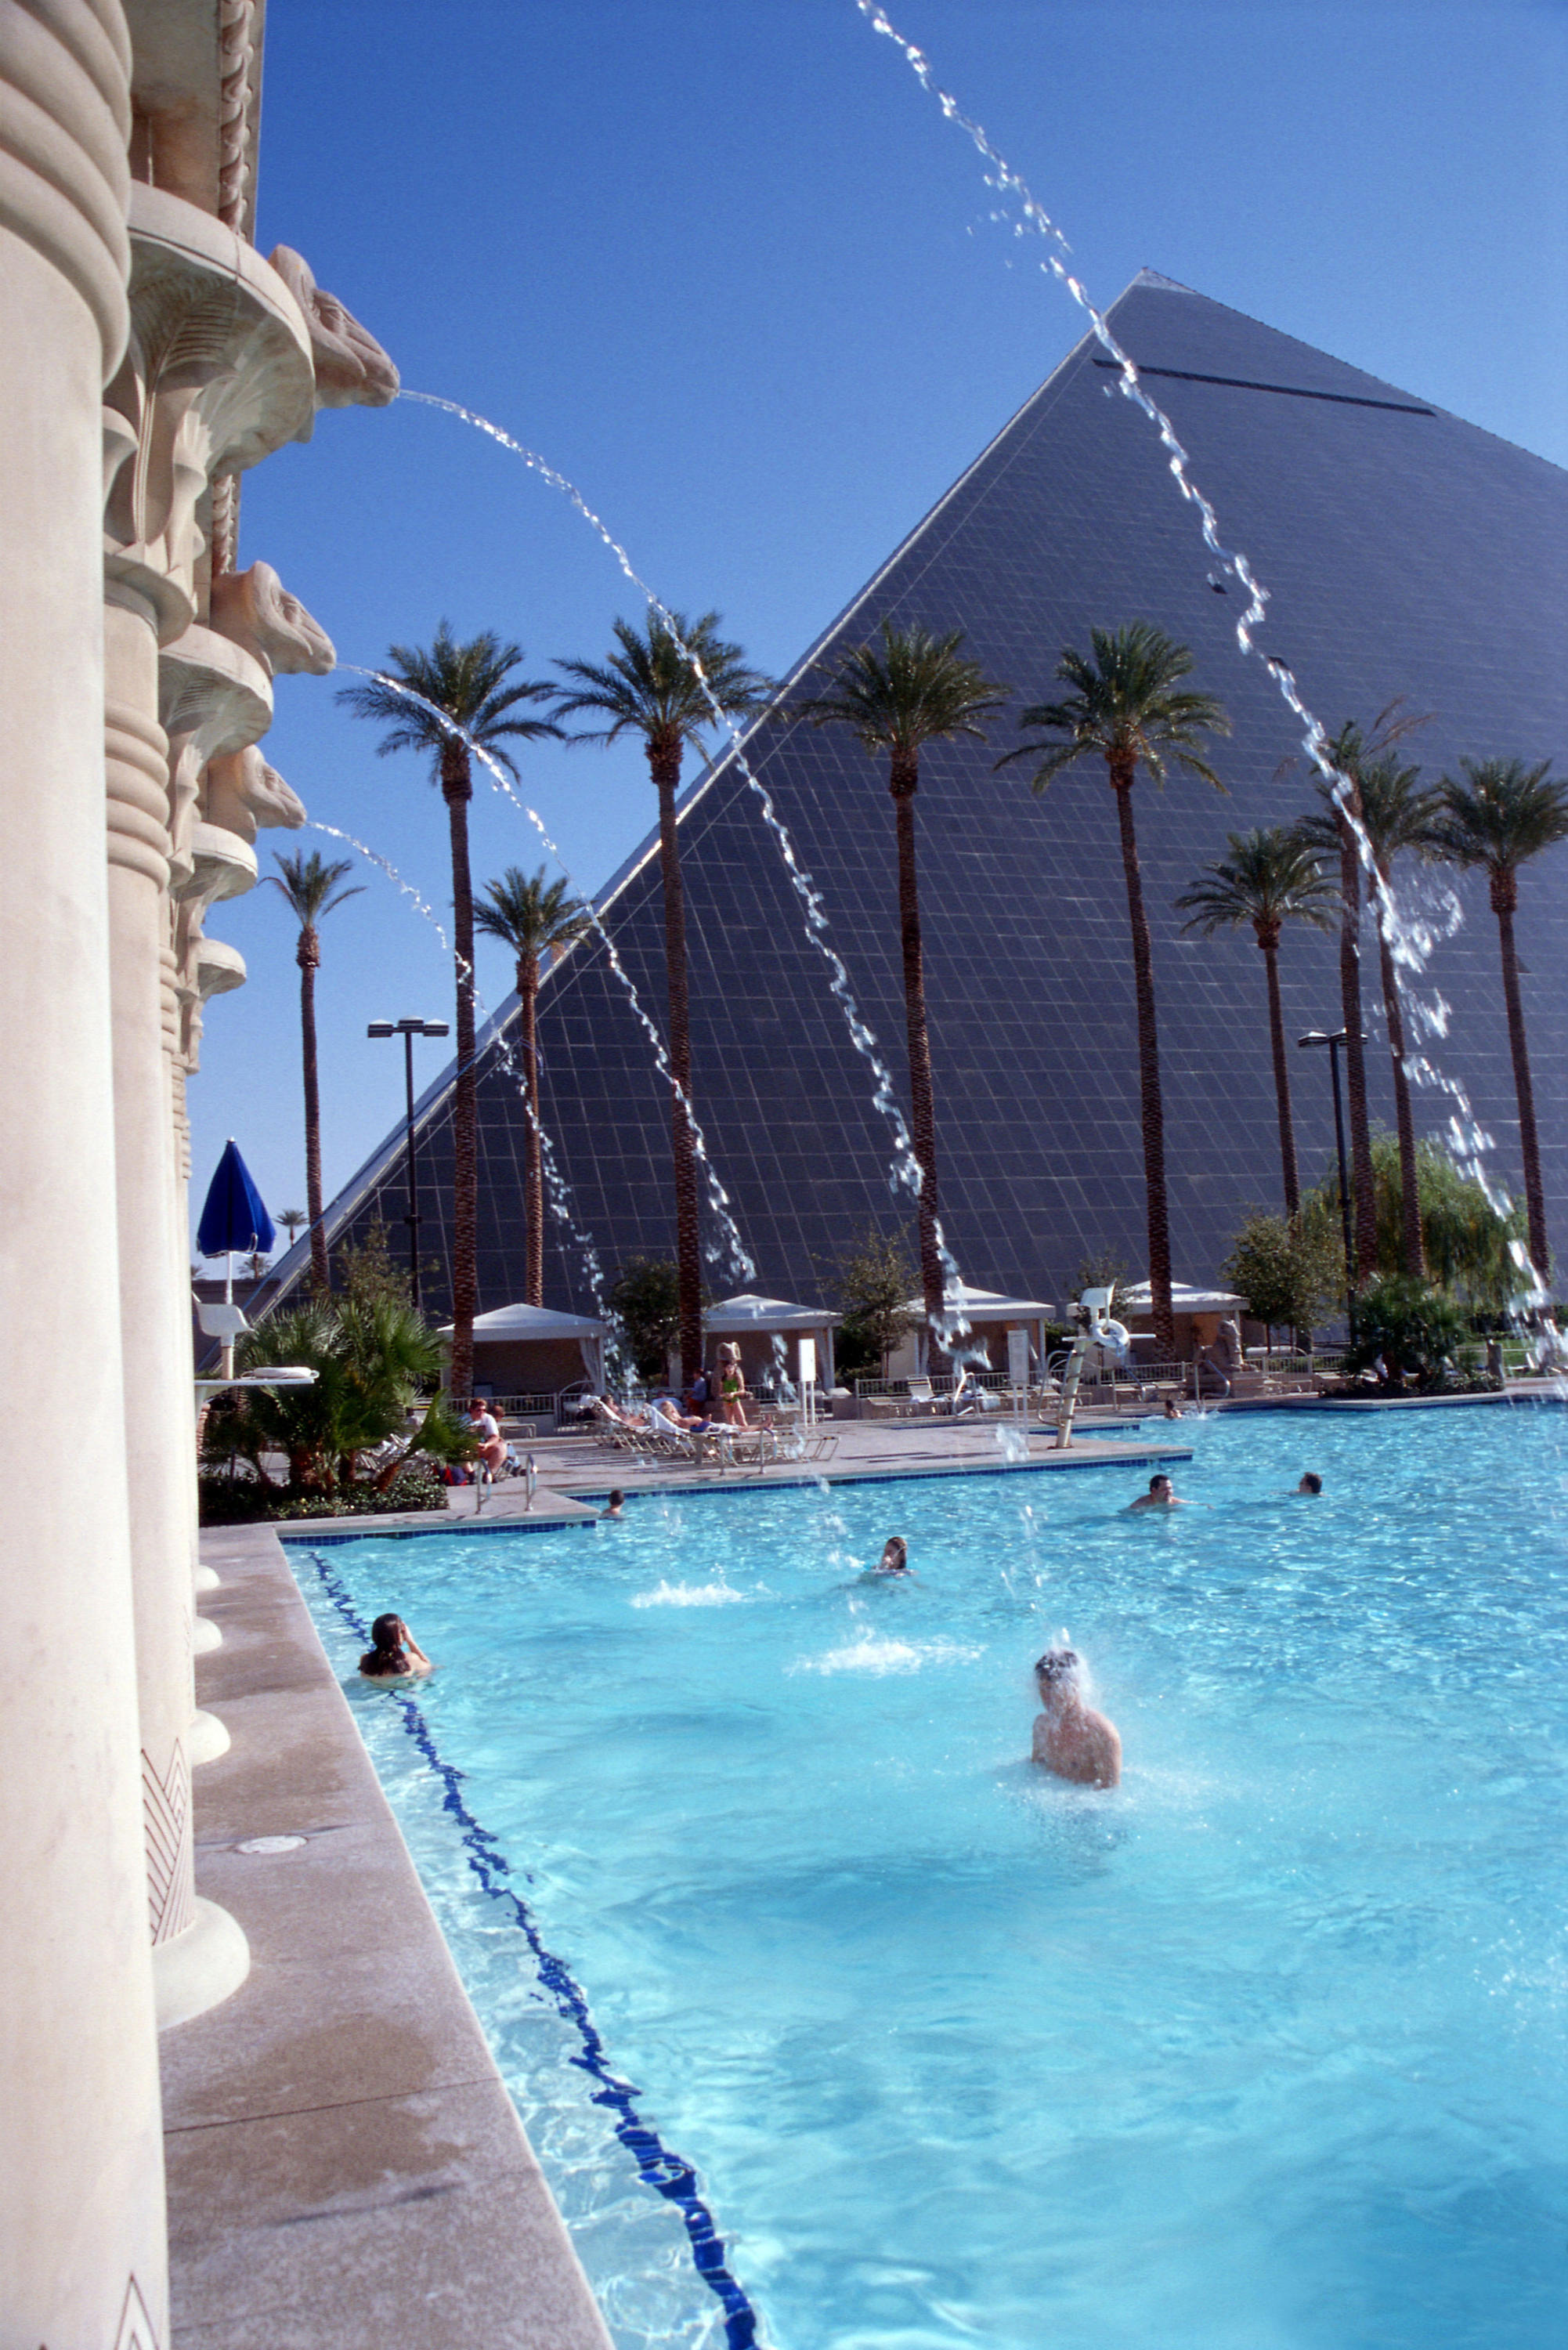 The Pool at Luxor Hotel and Casino